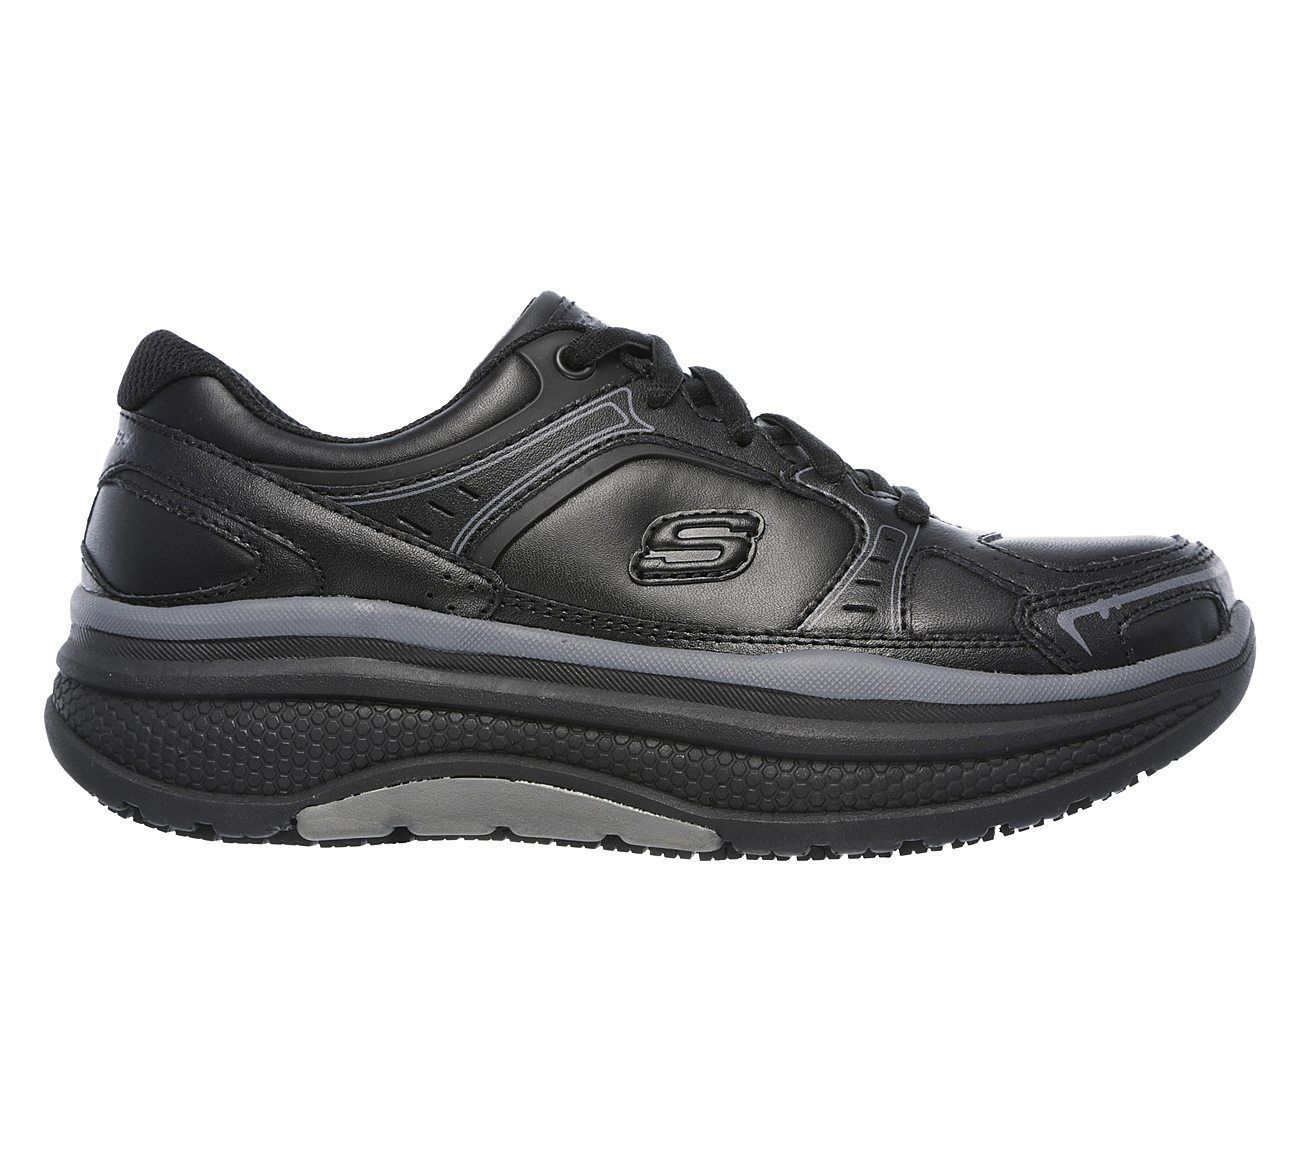 Skechers Work Black shoes Women Memory Foam Slip Resistant Rocker Comfort 77218 image 2